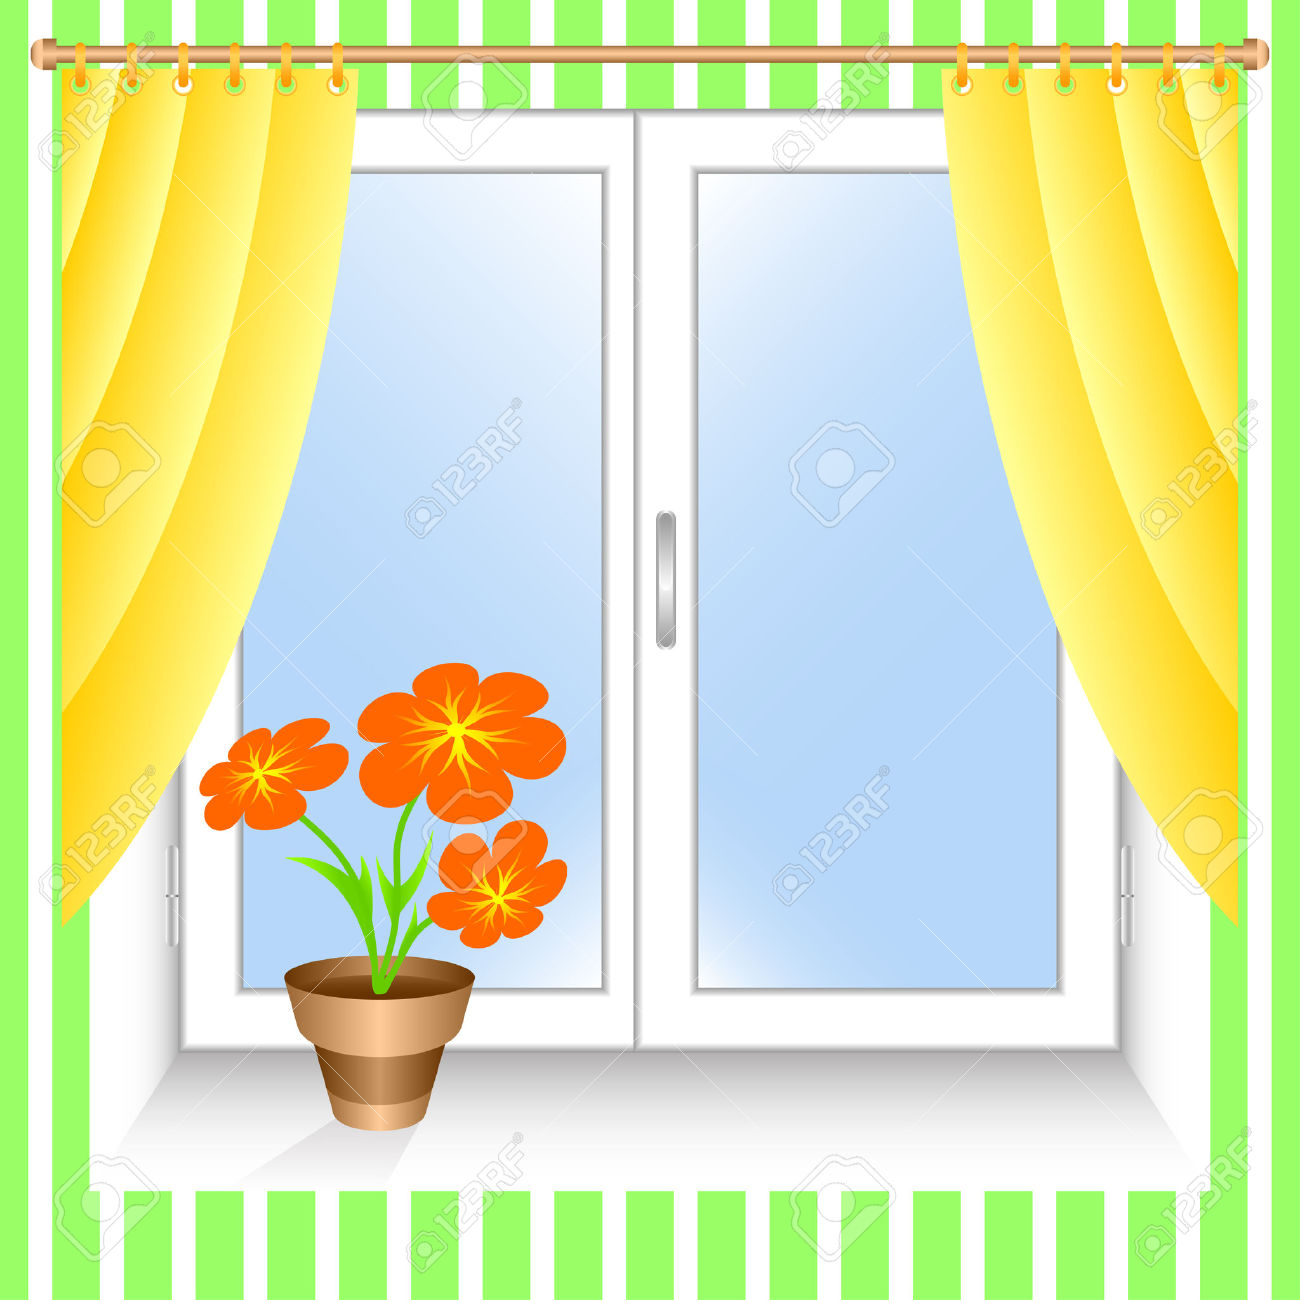 Kitchen Window Clip Art